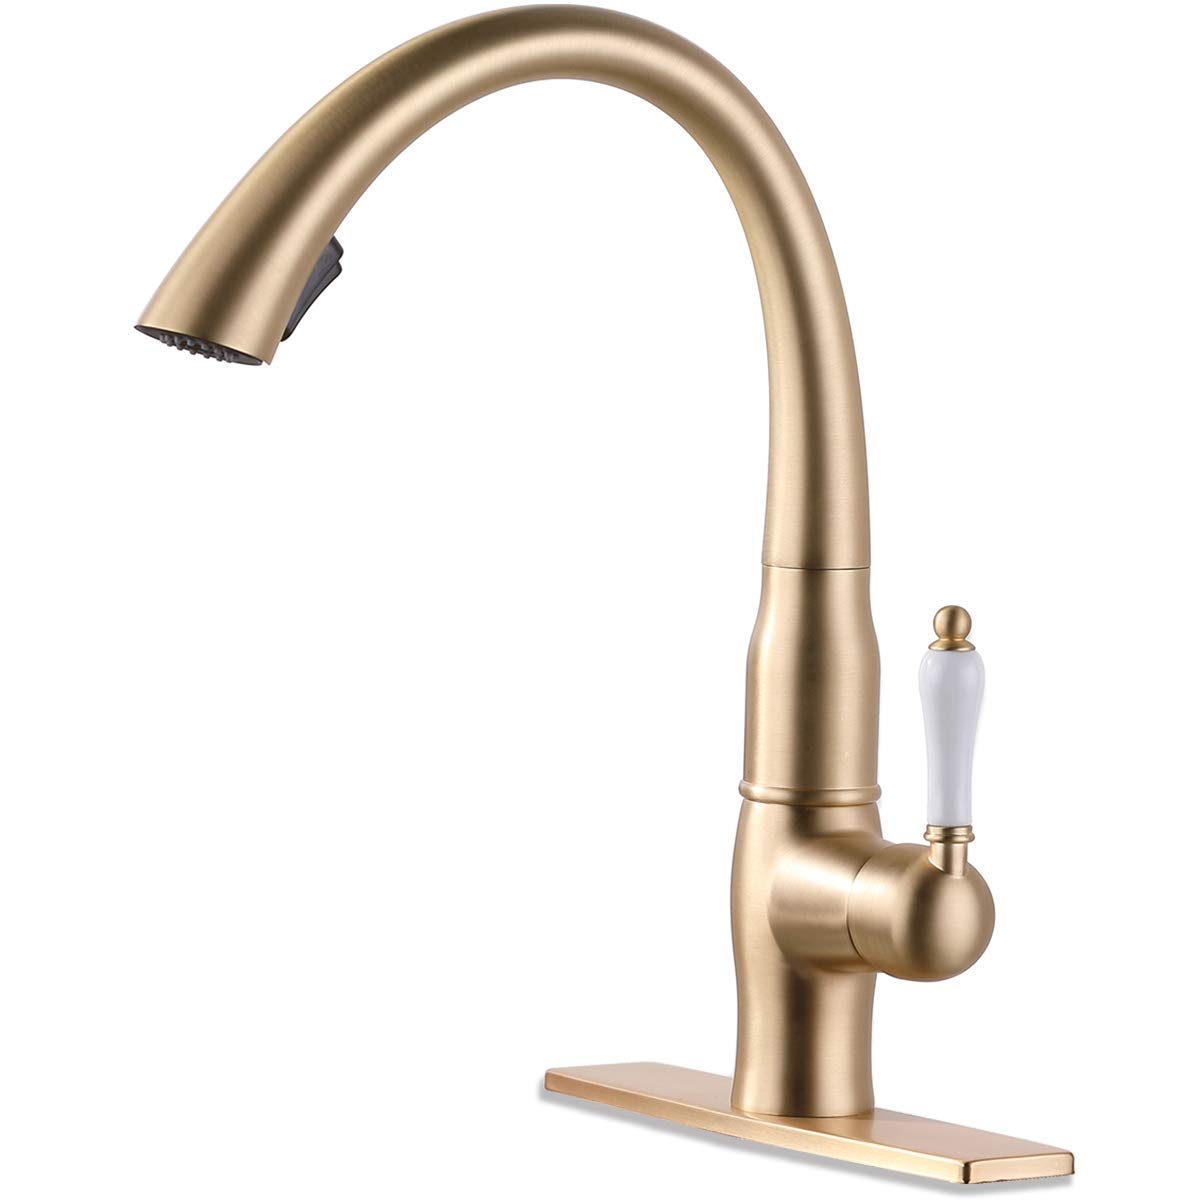 GAPPO Pull Down Kitchen Faucet with Sprayer Single Handle Brass Kitchen Sink Faucets Brushed Gold